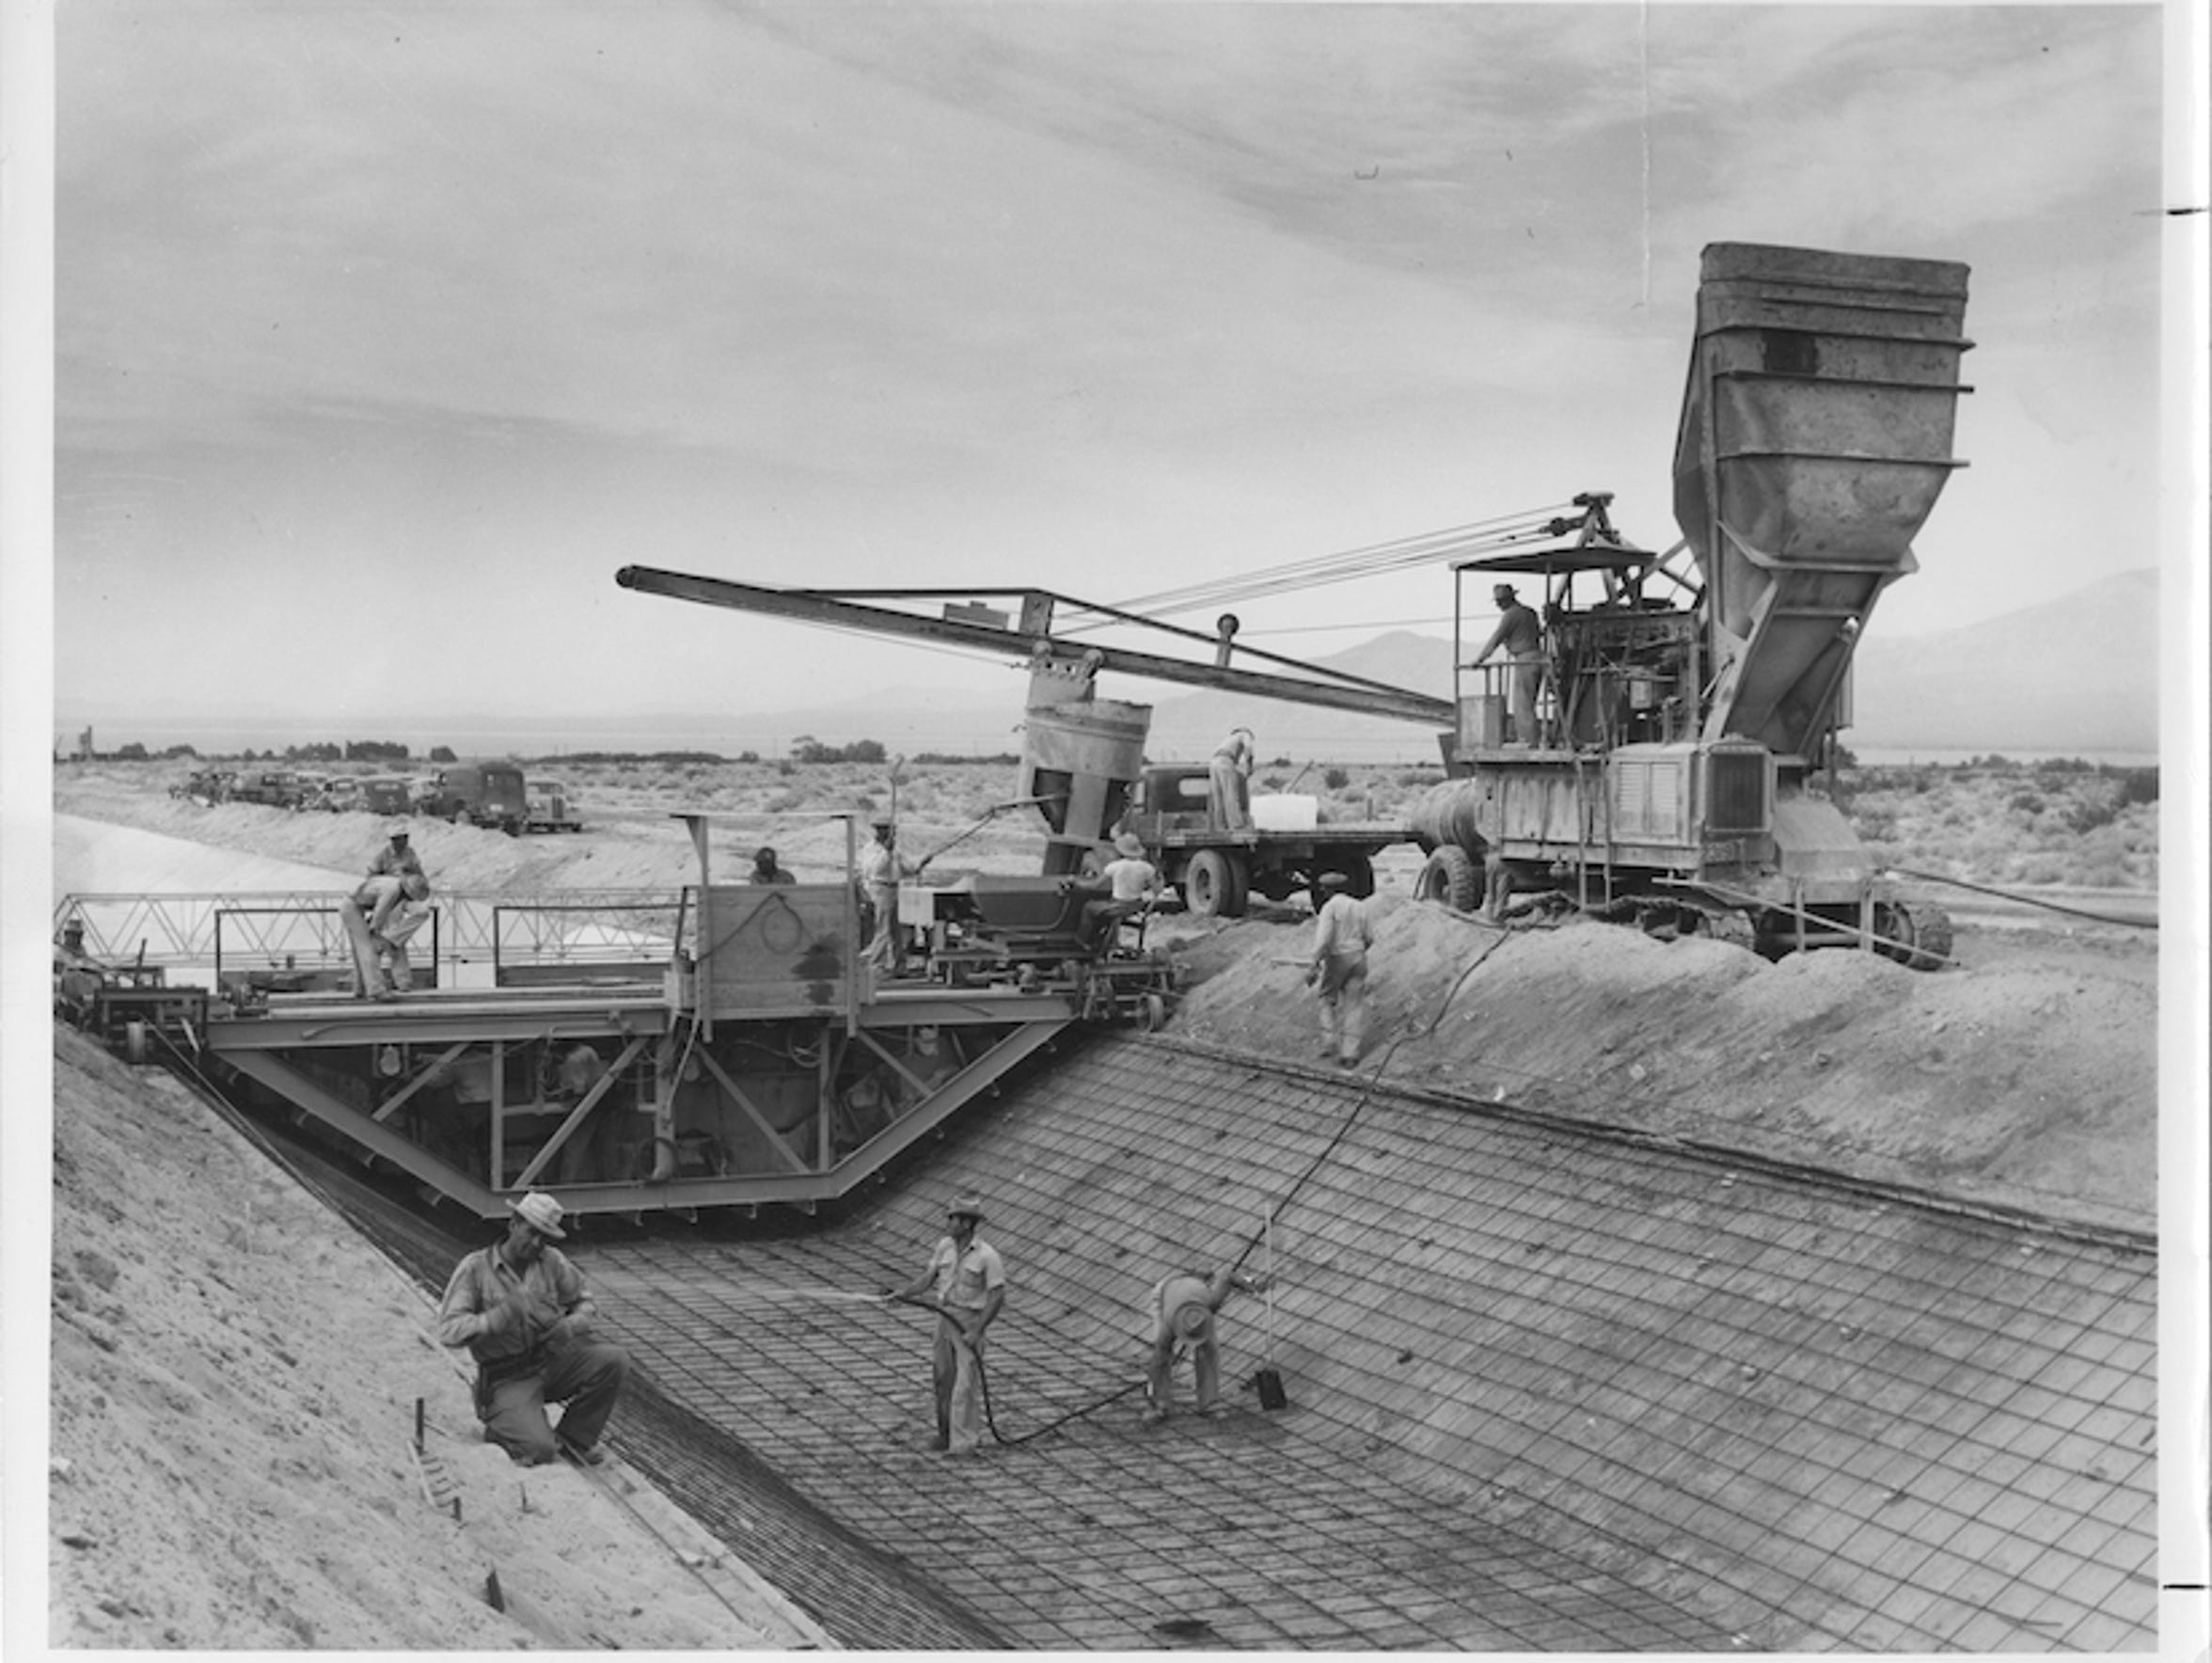 During the construction of the Coachella Canal in 1946,